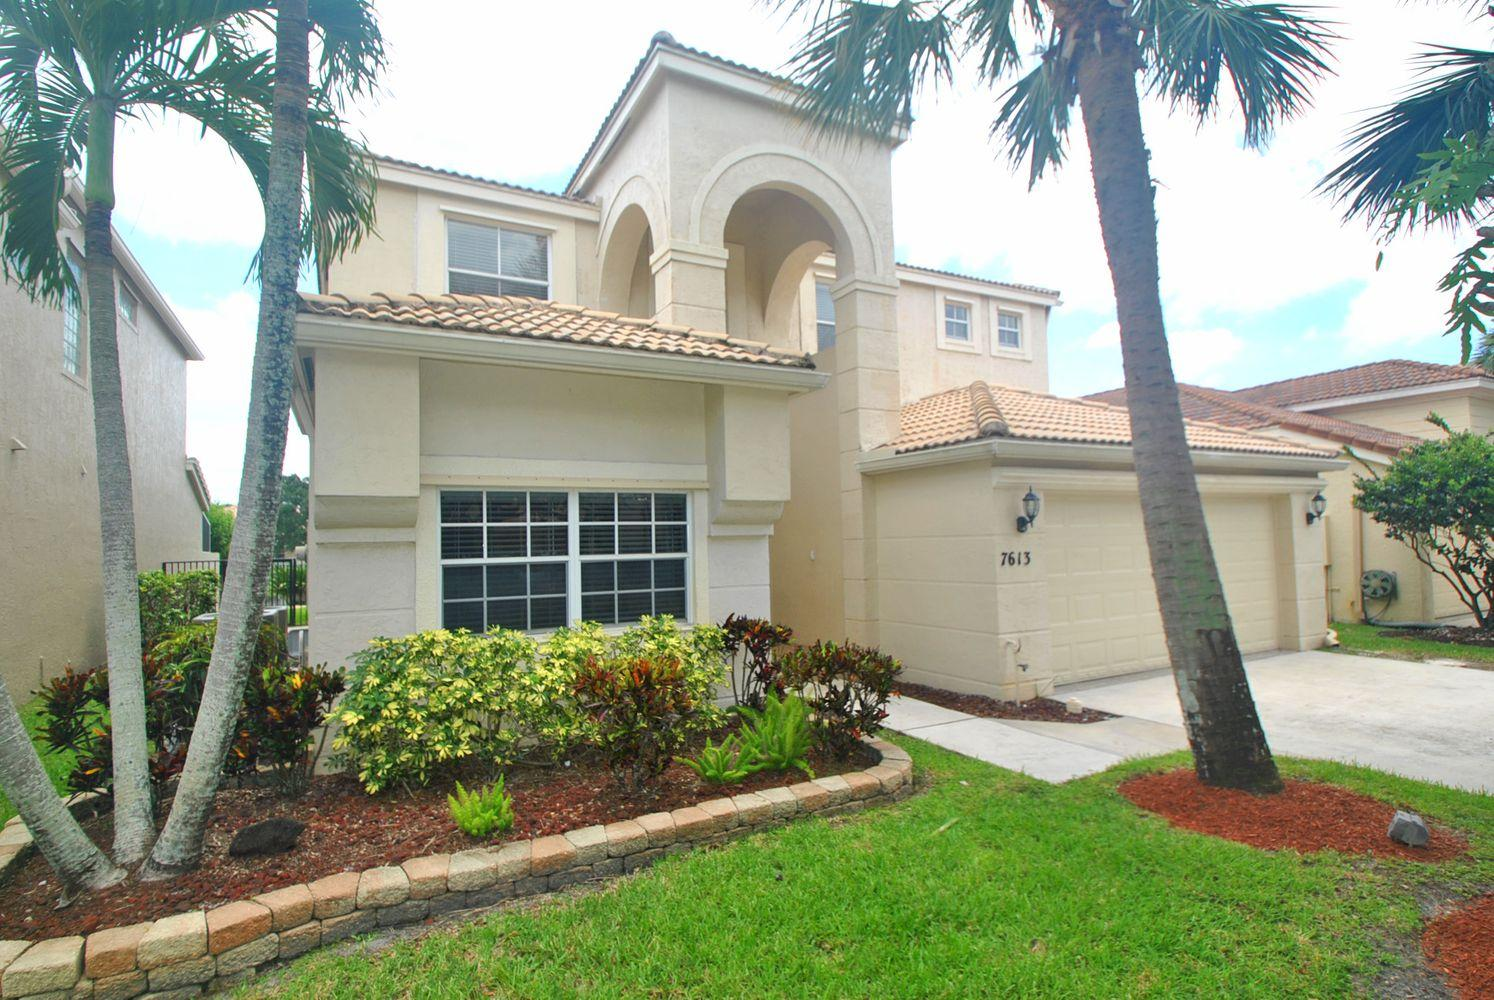 7613 Downwinds Lane, Lake Worth, Florida 33467, 5 Bedrooms Bedrooms, ,2.1 BathroomsBathrooms,Single family detached,For sale,Downwinds,RX-10550495